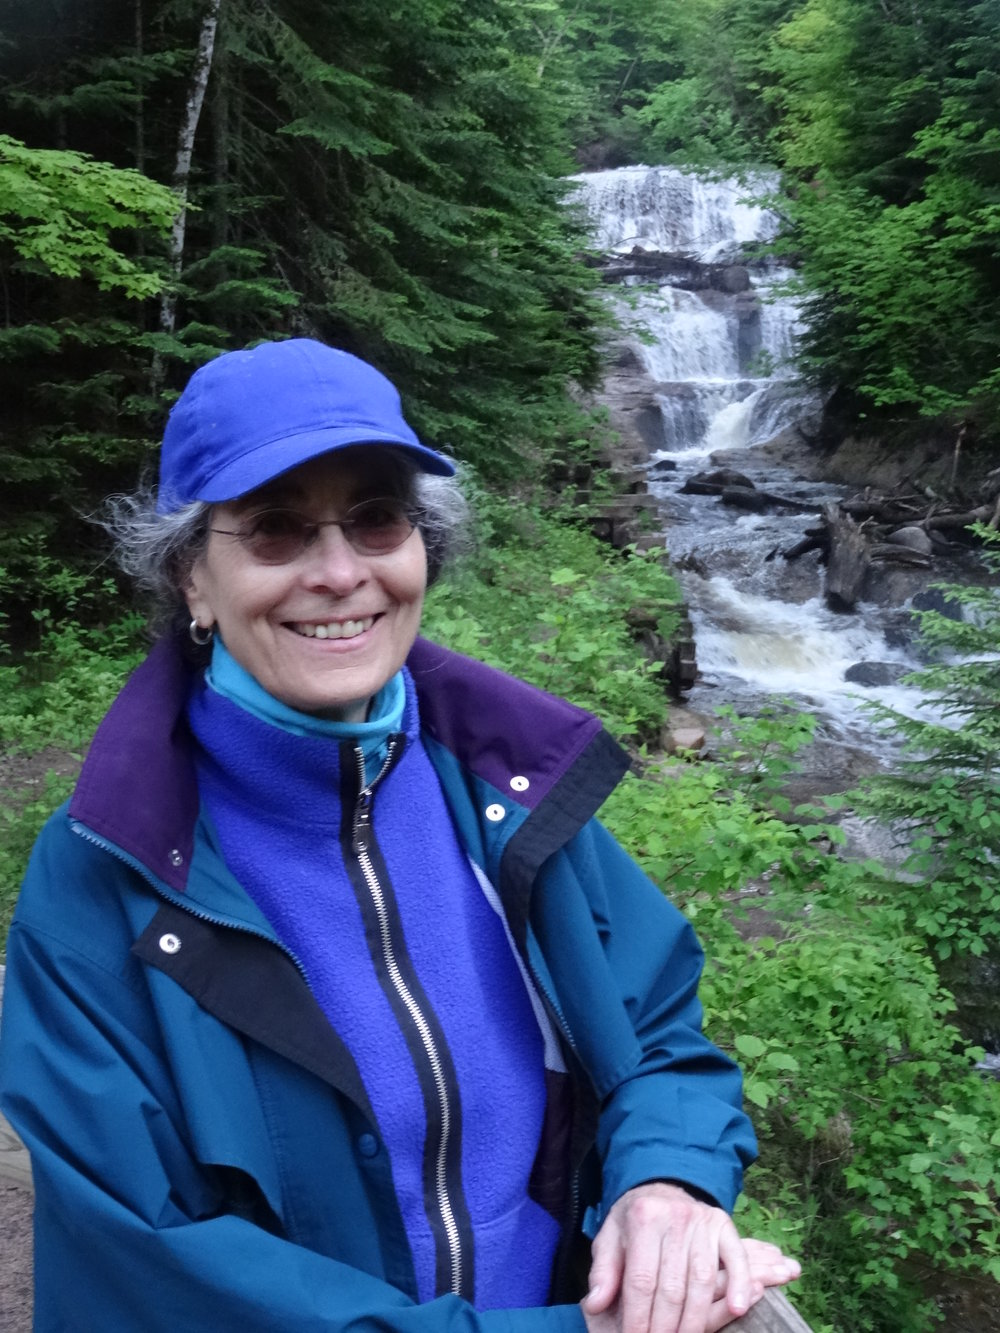 stephanie mills - Stephanie Mills is a longtime bioregionalist. She is the author of Epicurean Simplicity and In Service of the Wild among other books as well as numerous reviews and articles. Mills has lived in Maple City since 1984. Visit her online: www.smillswriter.com.